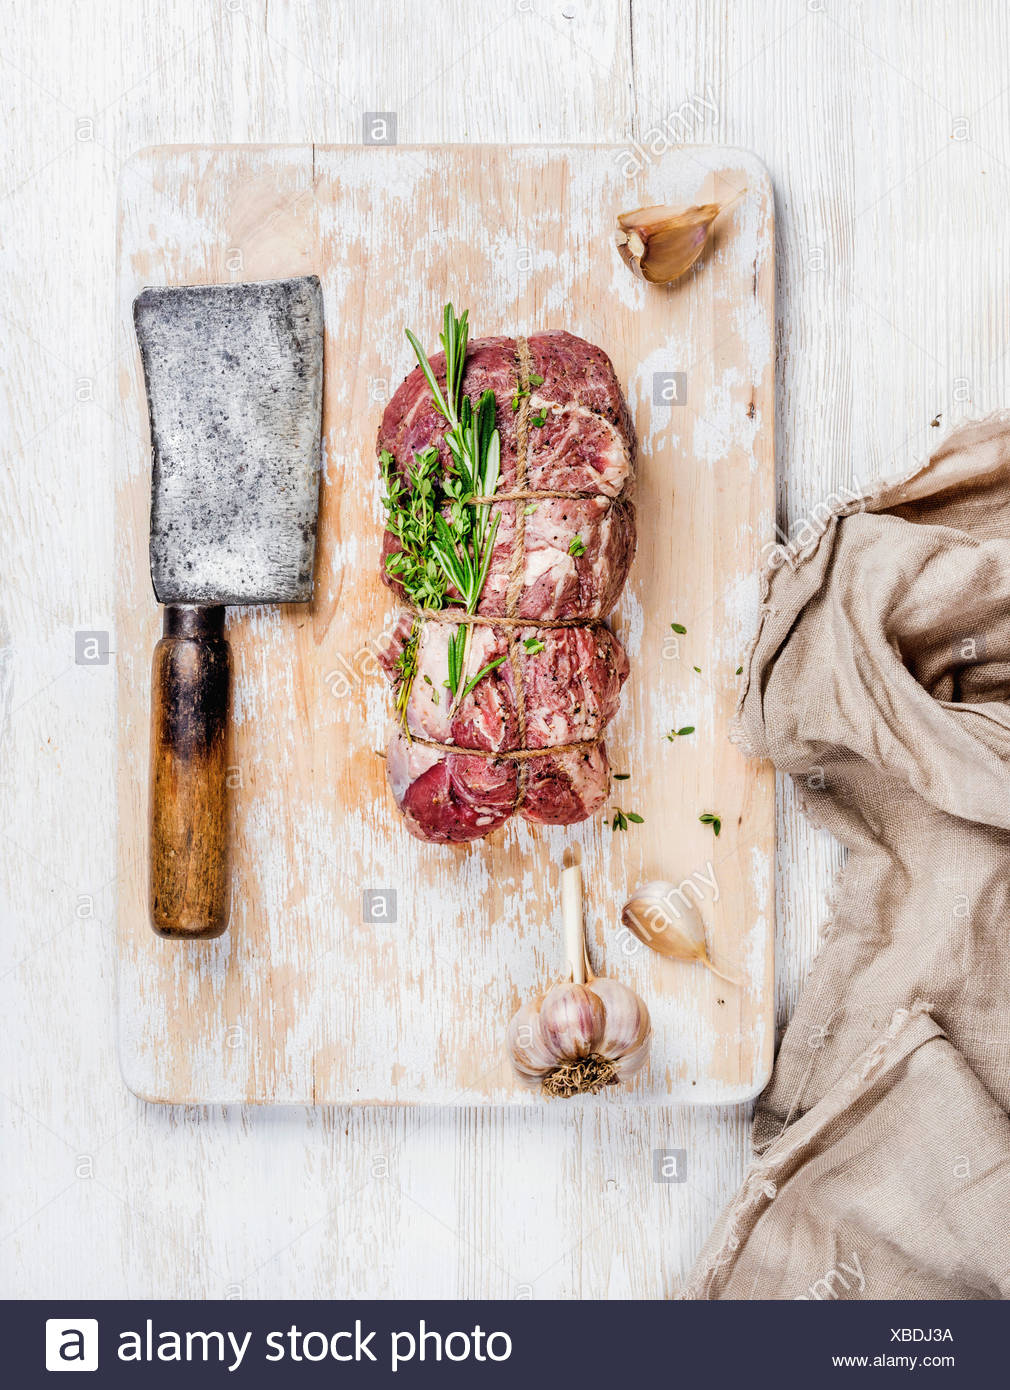 Raw uncooked roastbeef meat cut with rosemary, thyme and garlic and butcher knife on old white painted wooden background, top vi - Stock Image